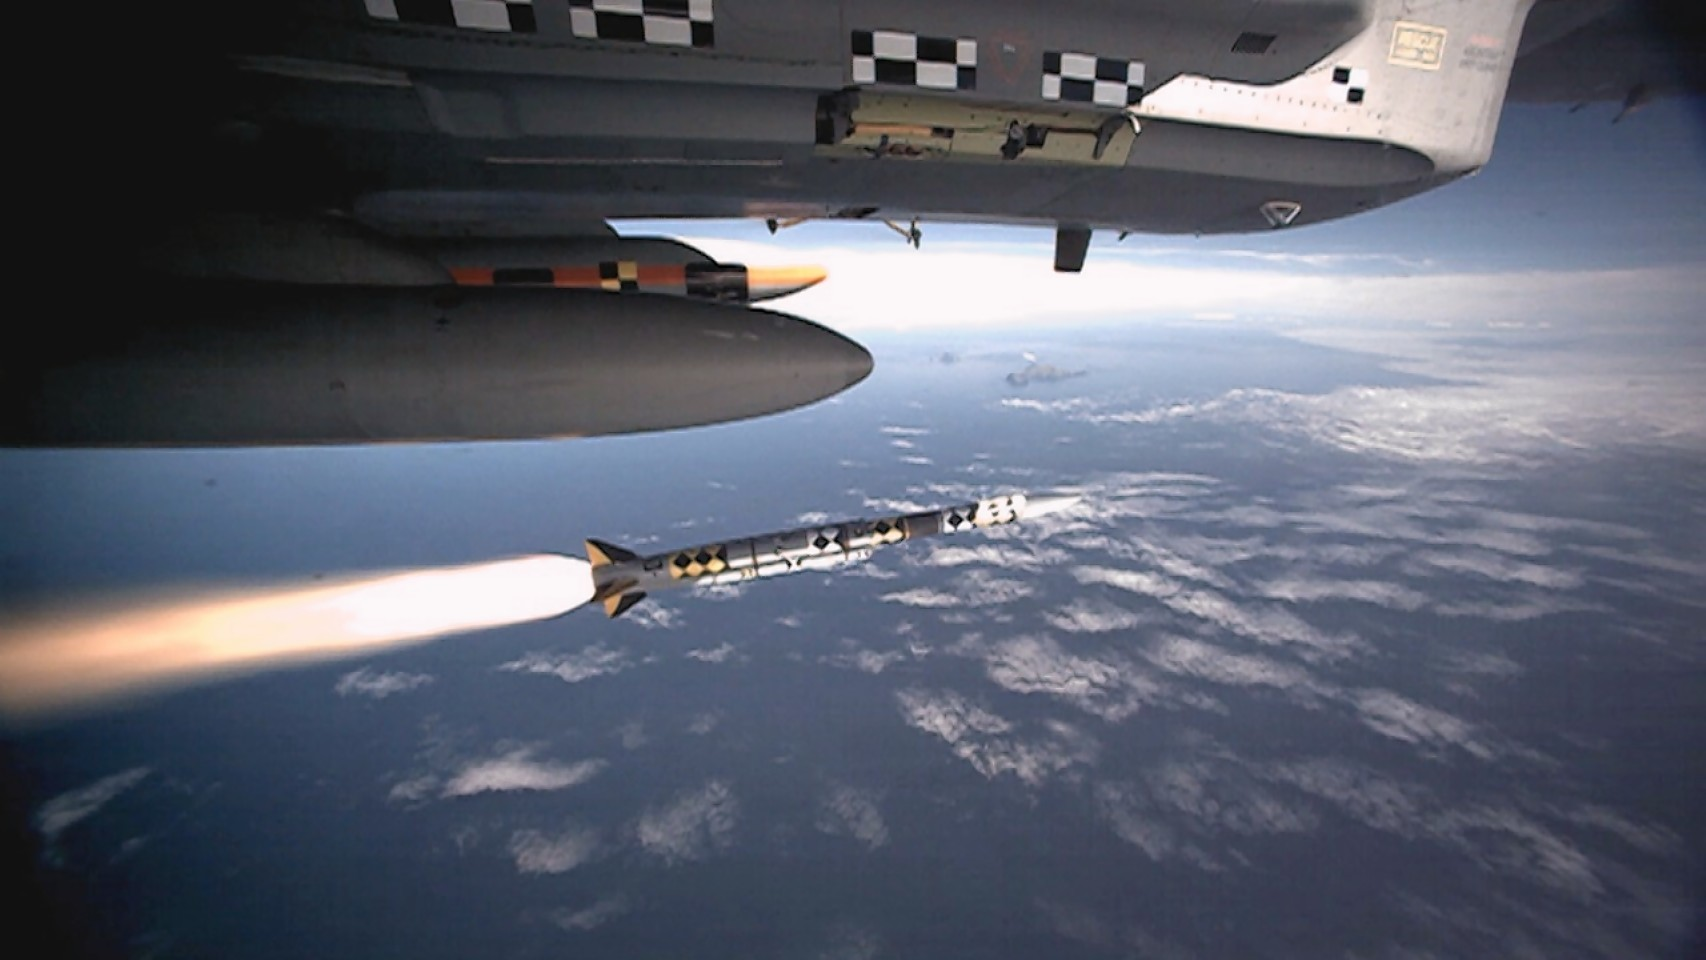 BAE Systems has successfully completed guided firing trials of the Meteor